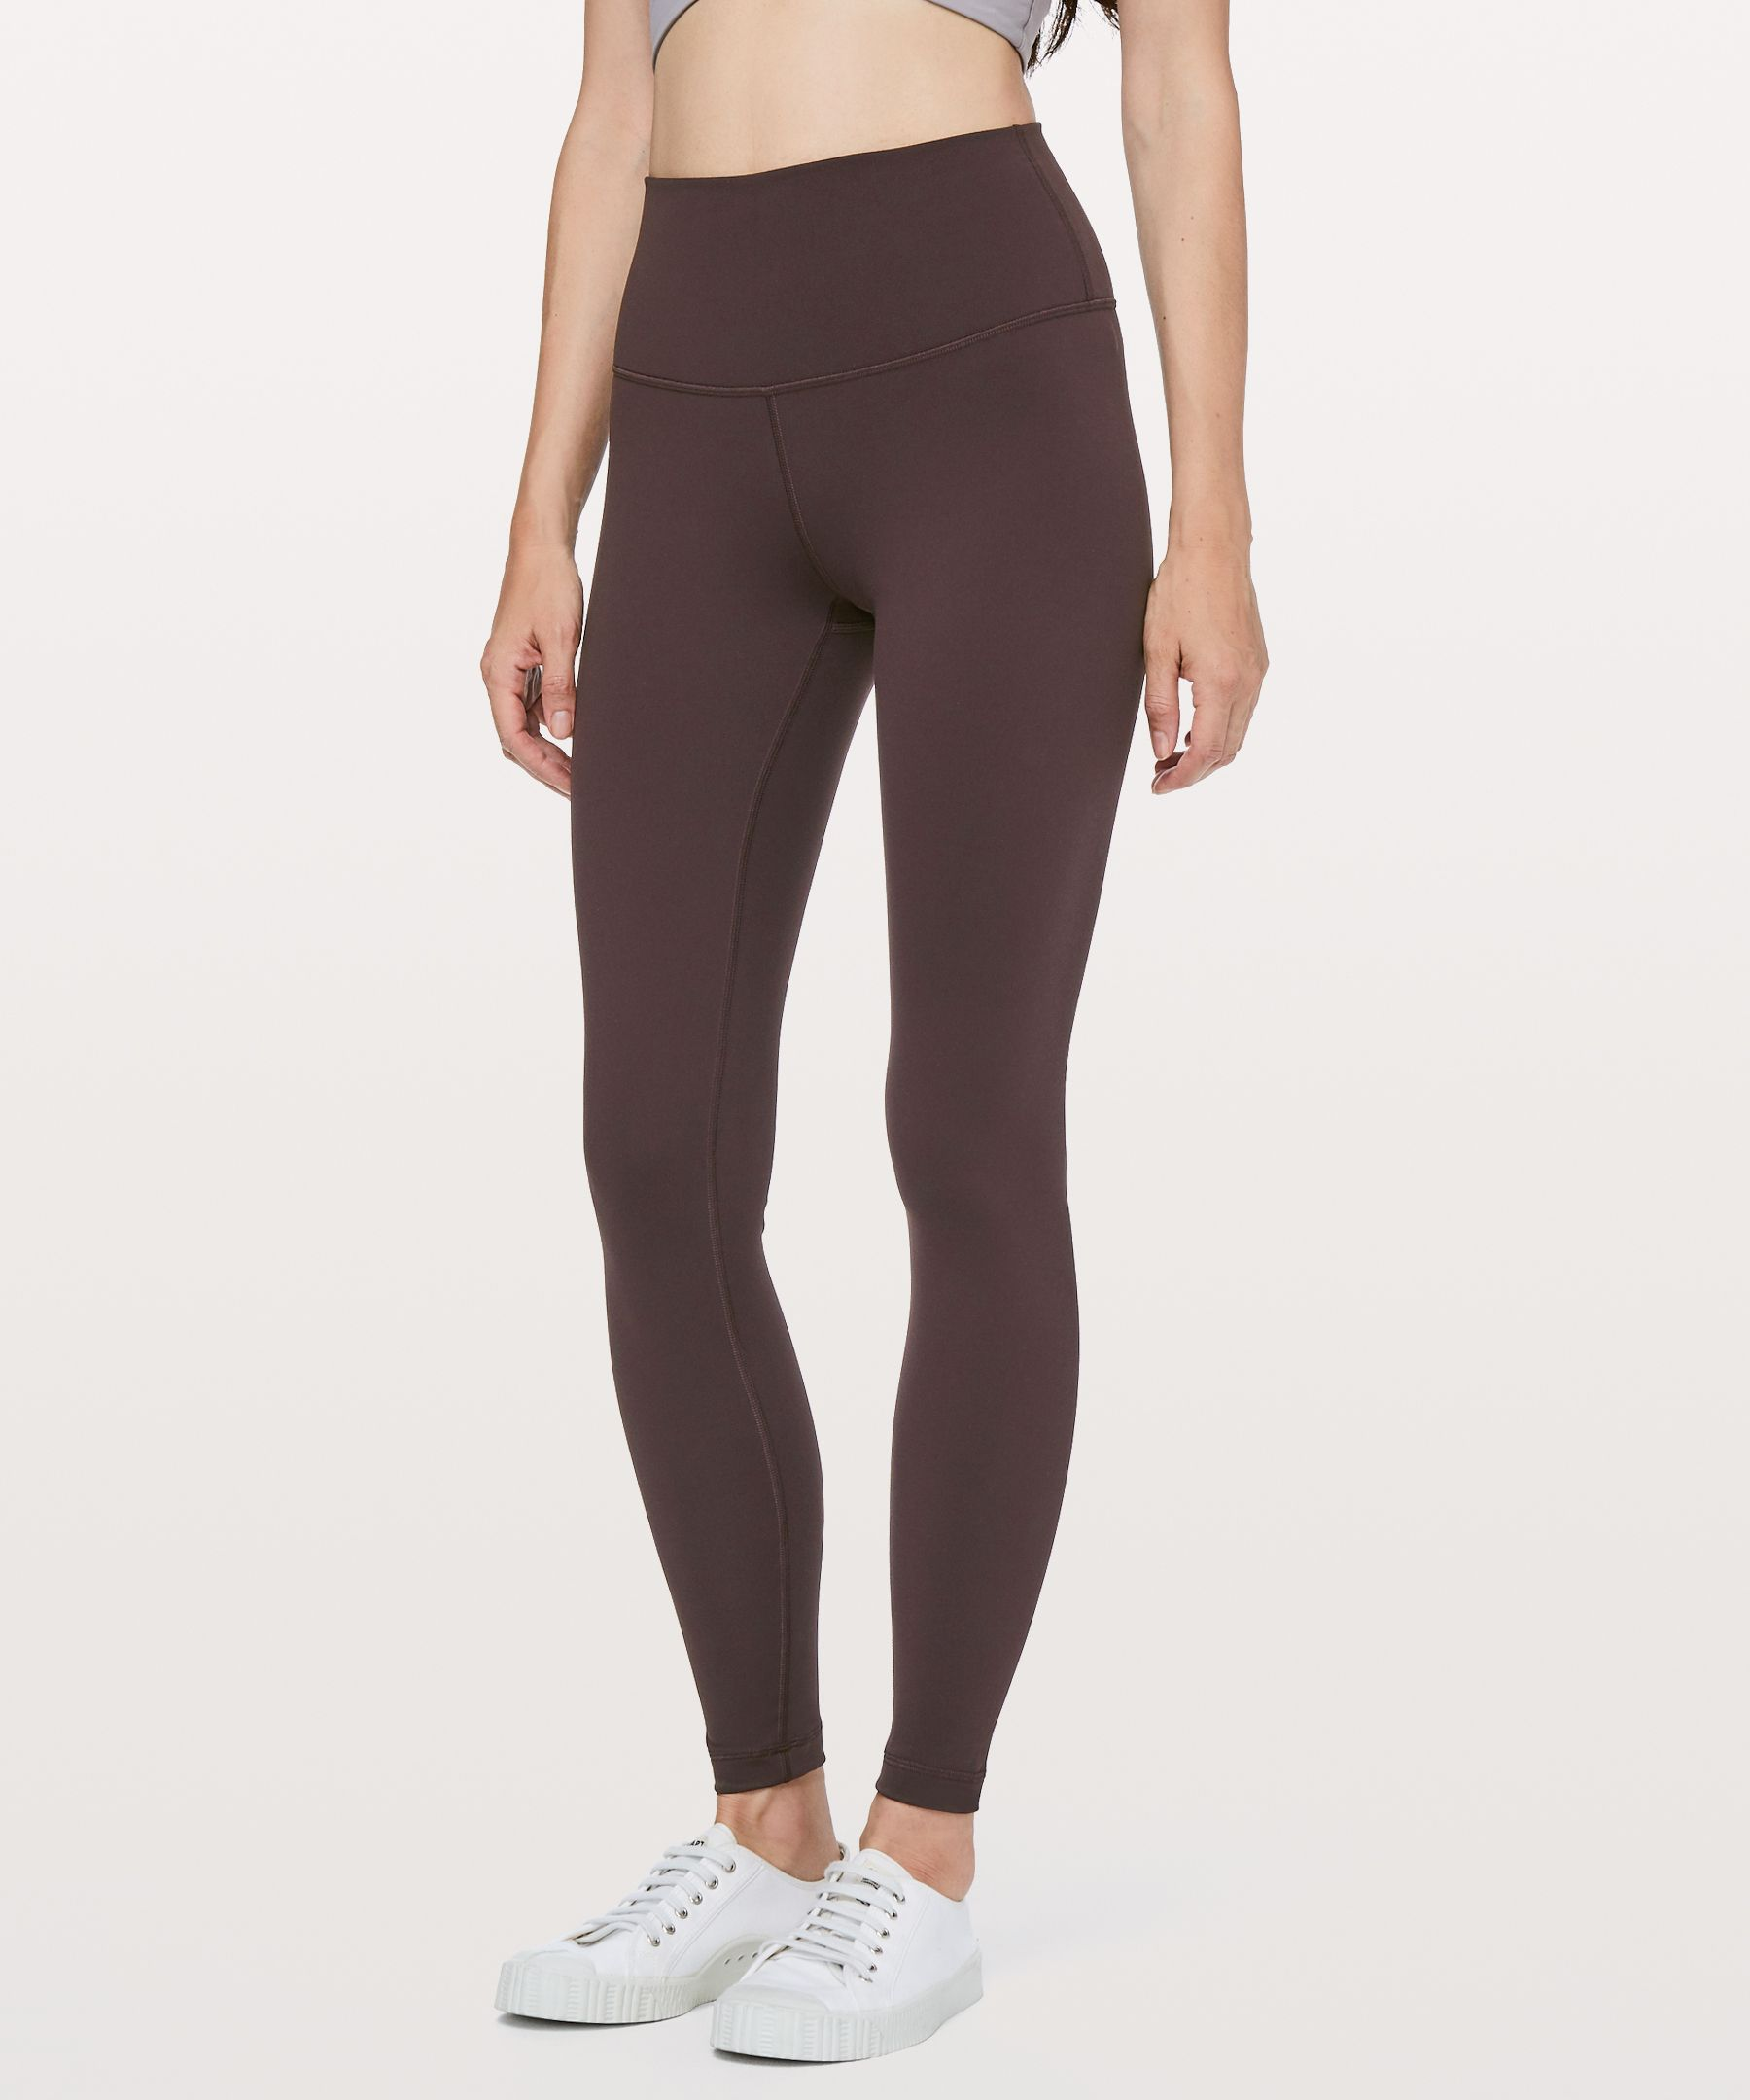 Wunder Under Hi-Rise Tight *Full-On Luon 28"